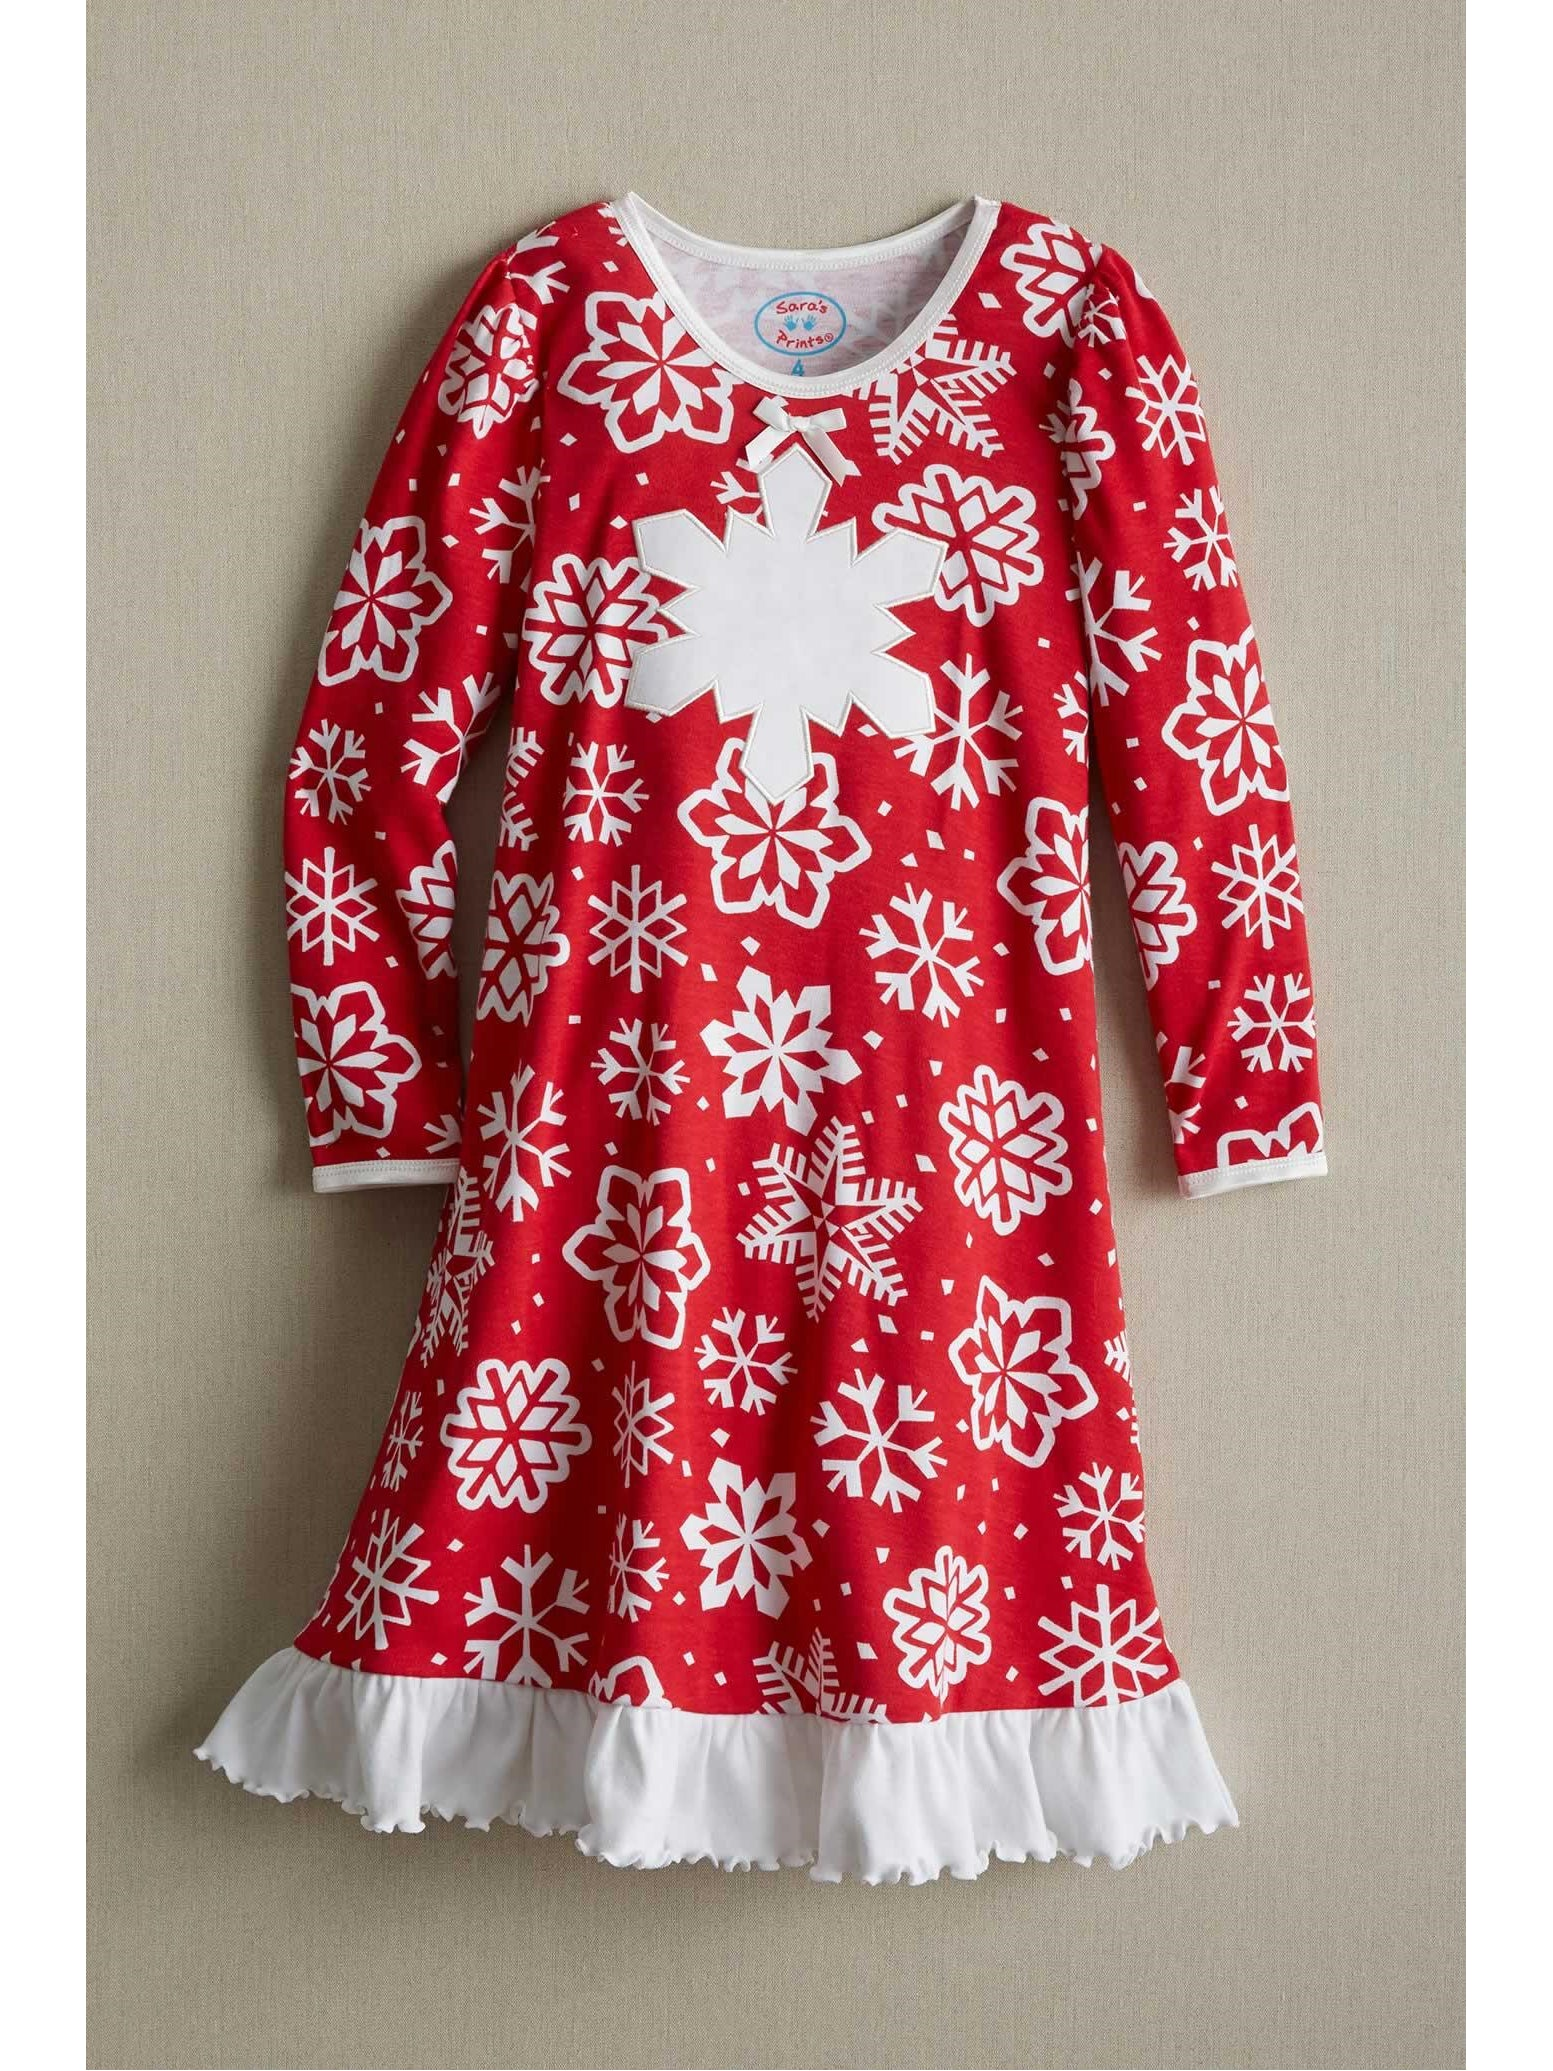 Let it snow snowflake embroidered dress